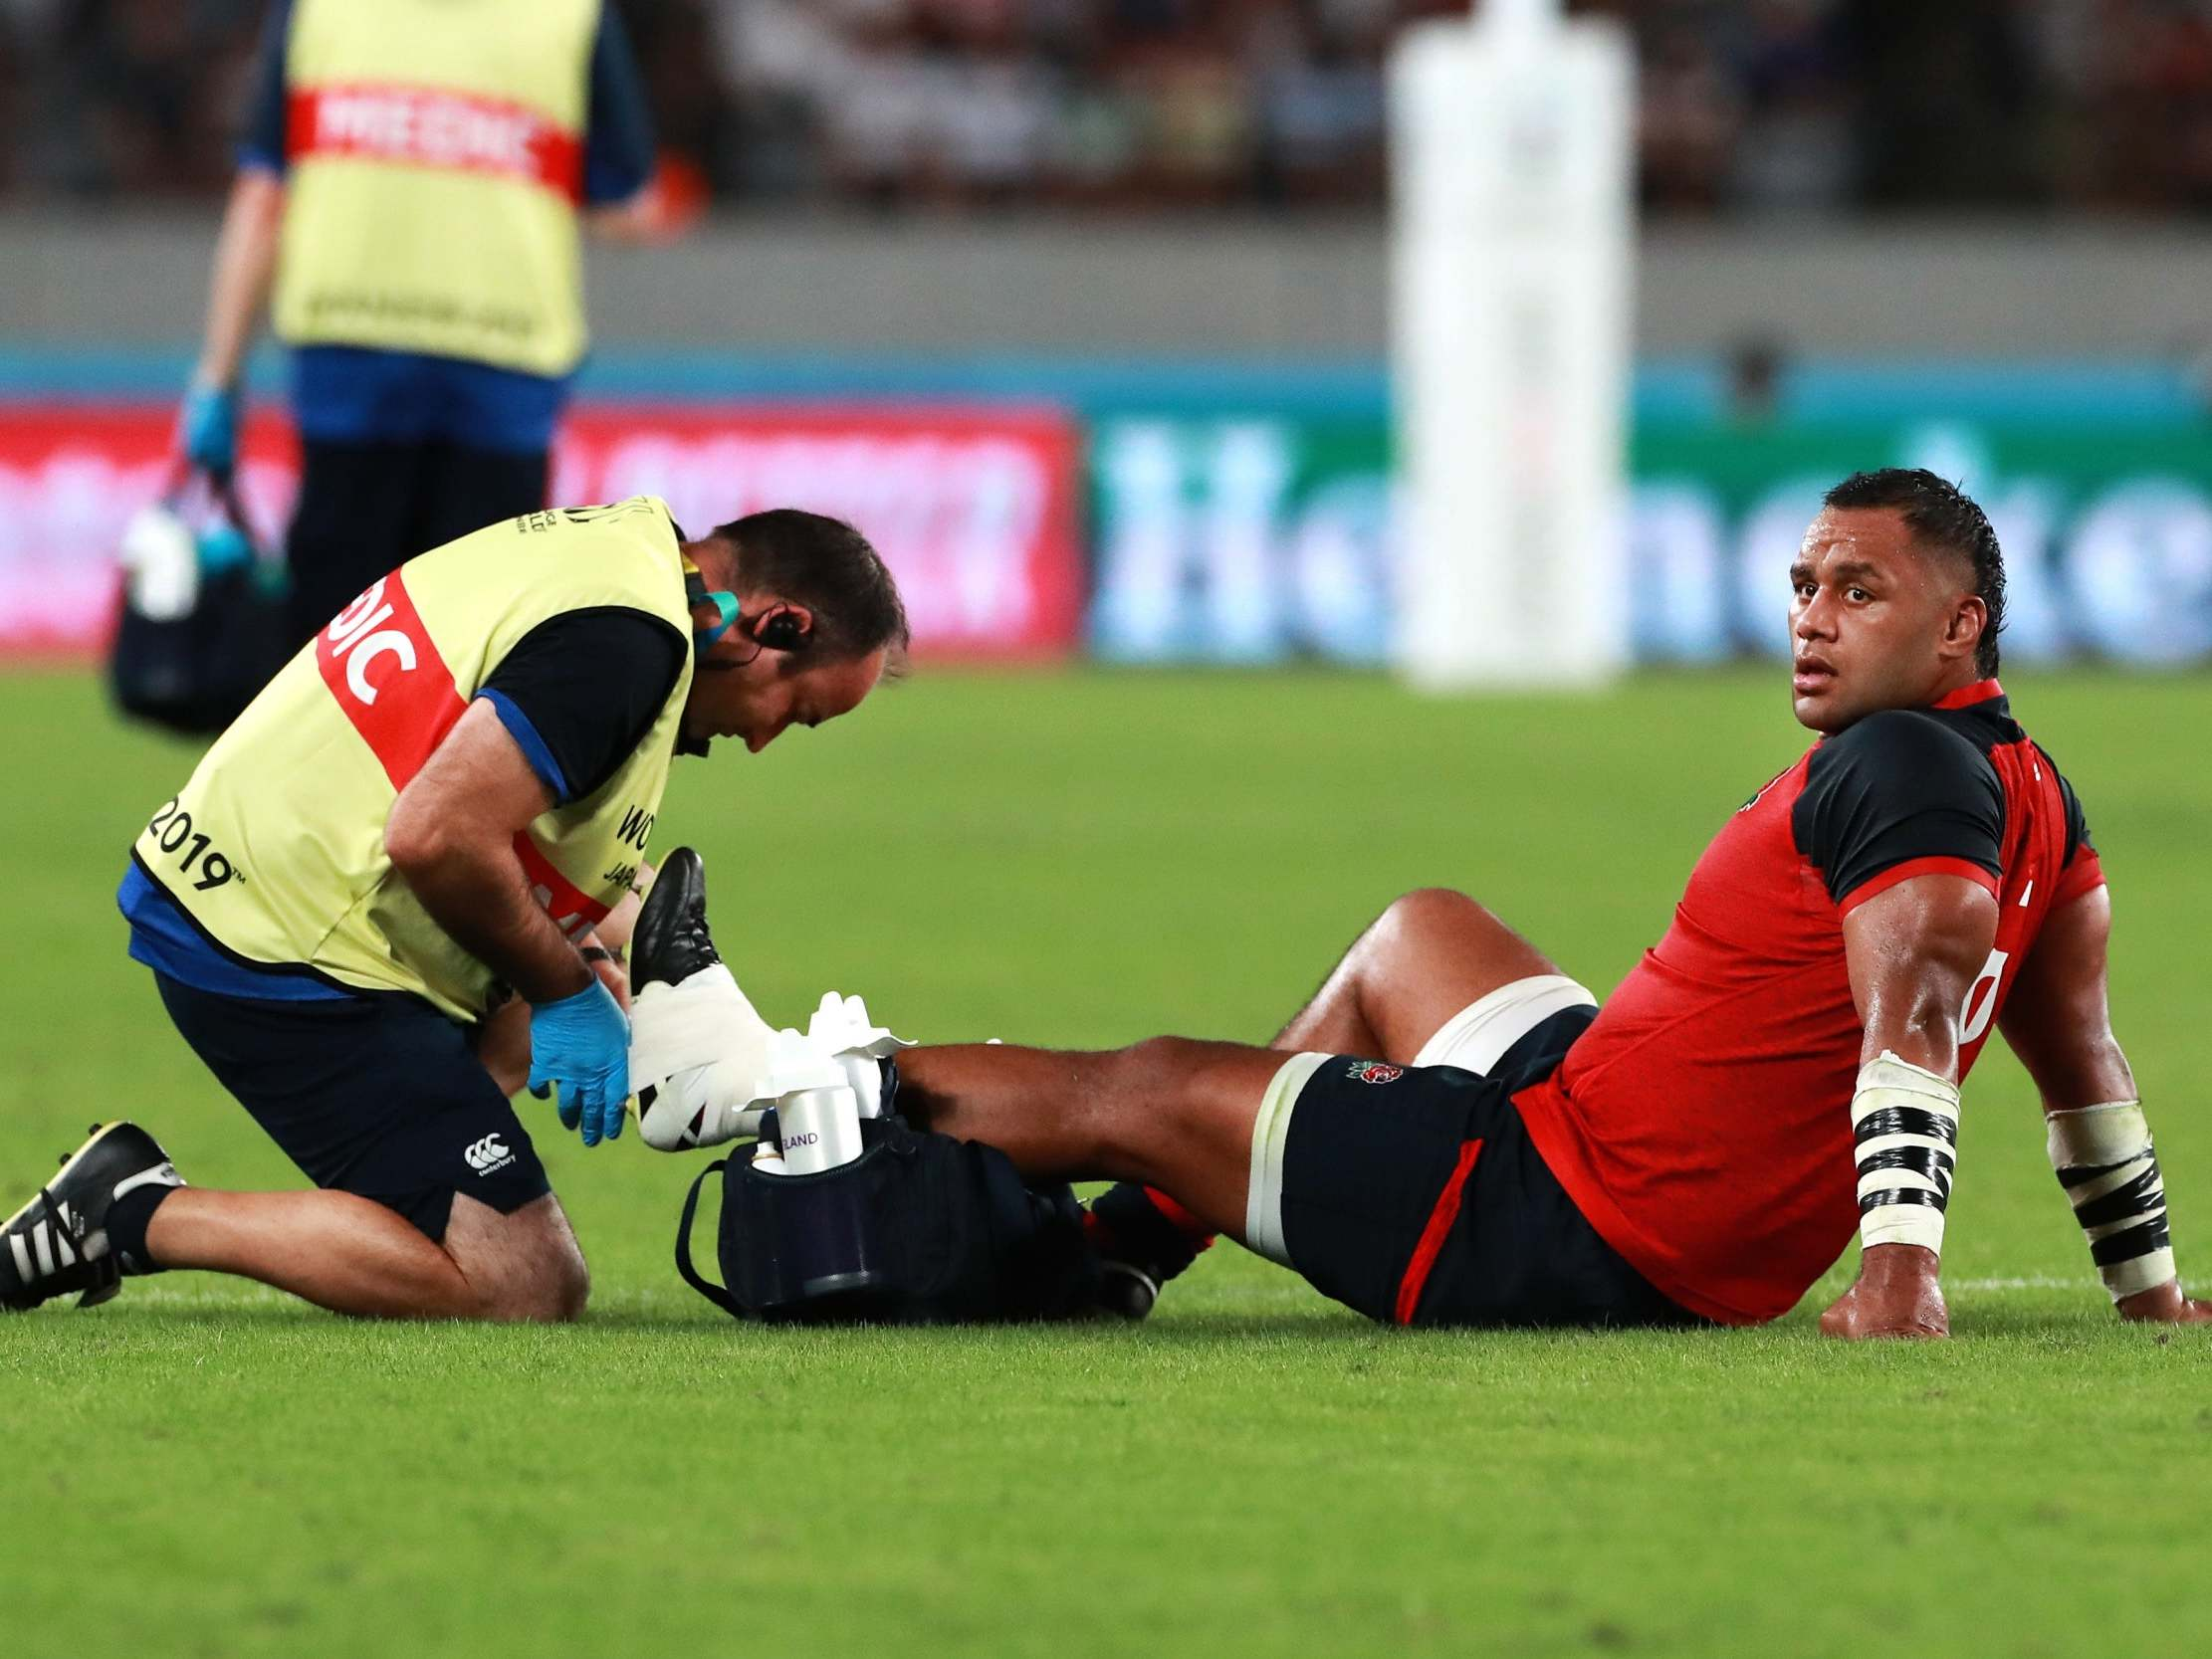 Rugby World Cup 2019: England sweat on Billy Vunipola injury as Owen Farrell clears up HIA confusion